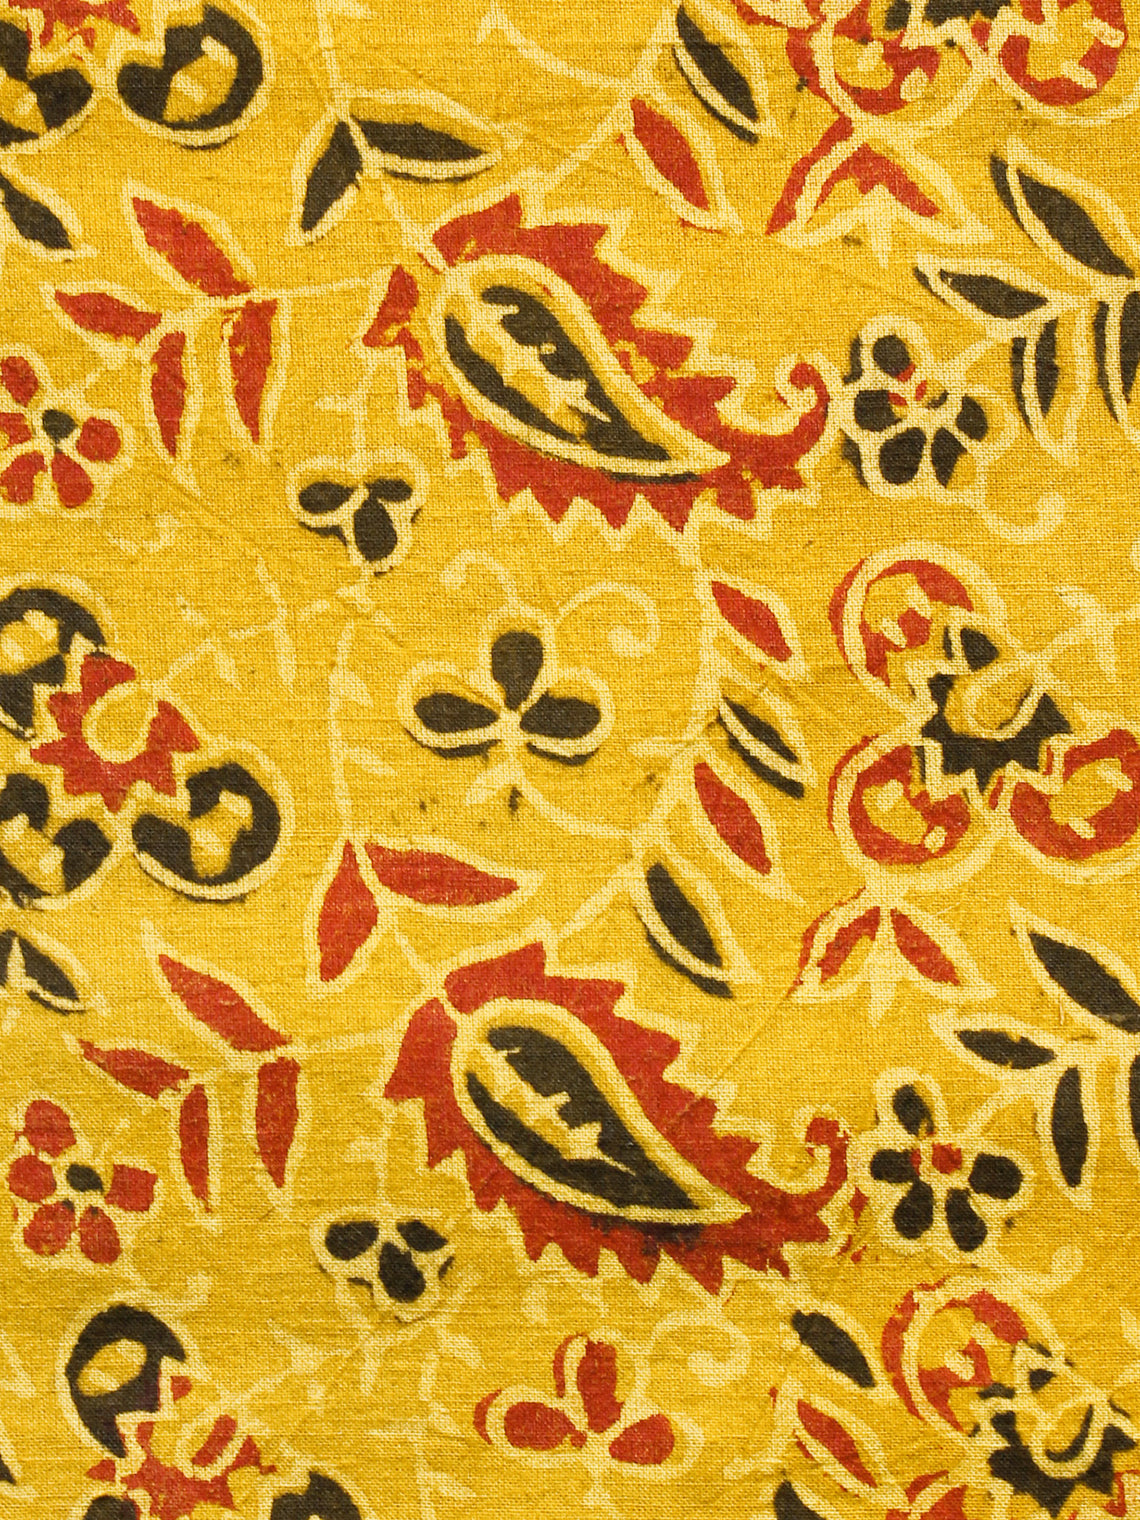 Yellow Black Red Ajrakh Hand Block Printed Cotton Fabric Per Meter - F003F1688